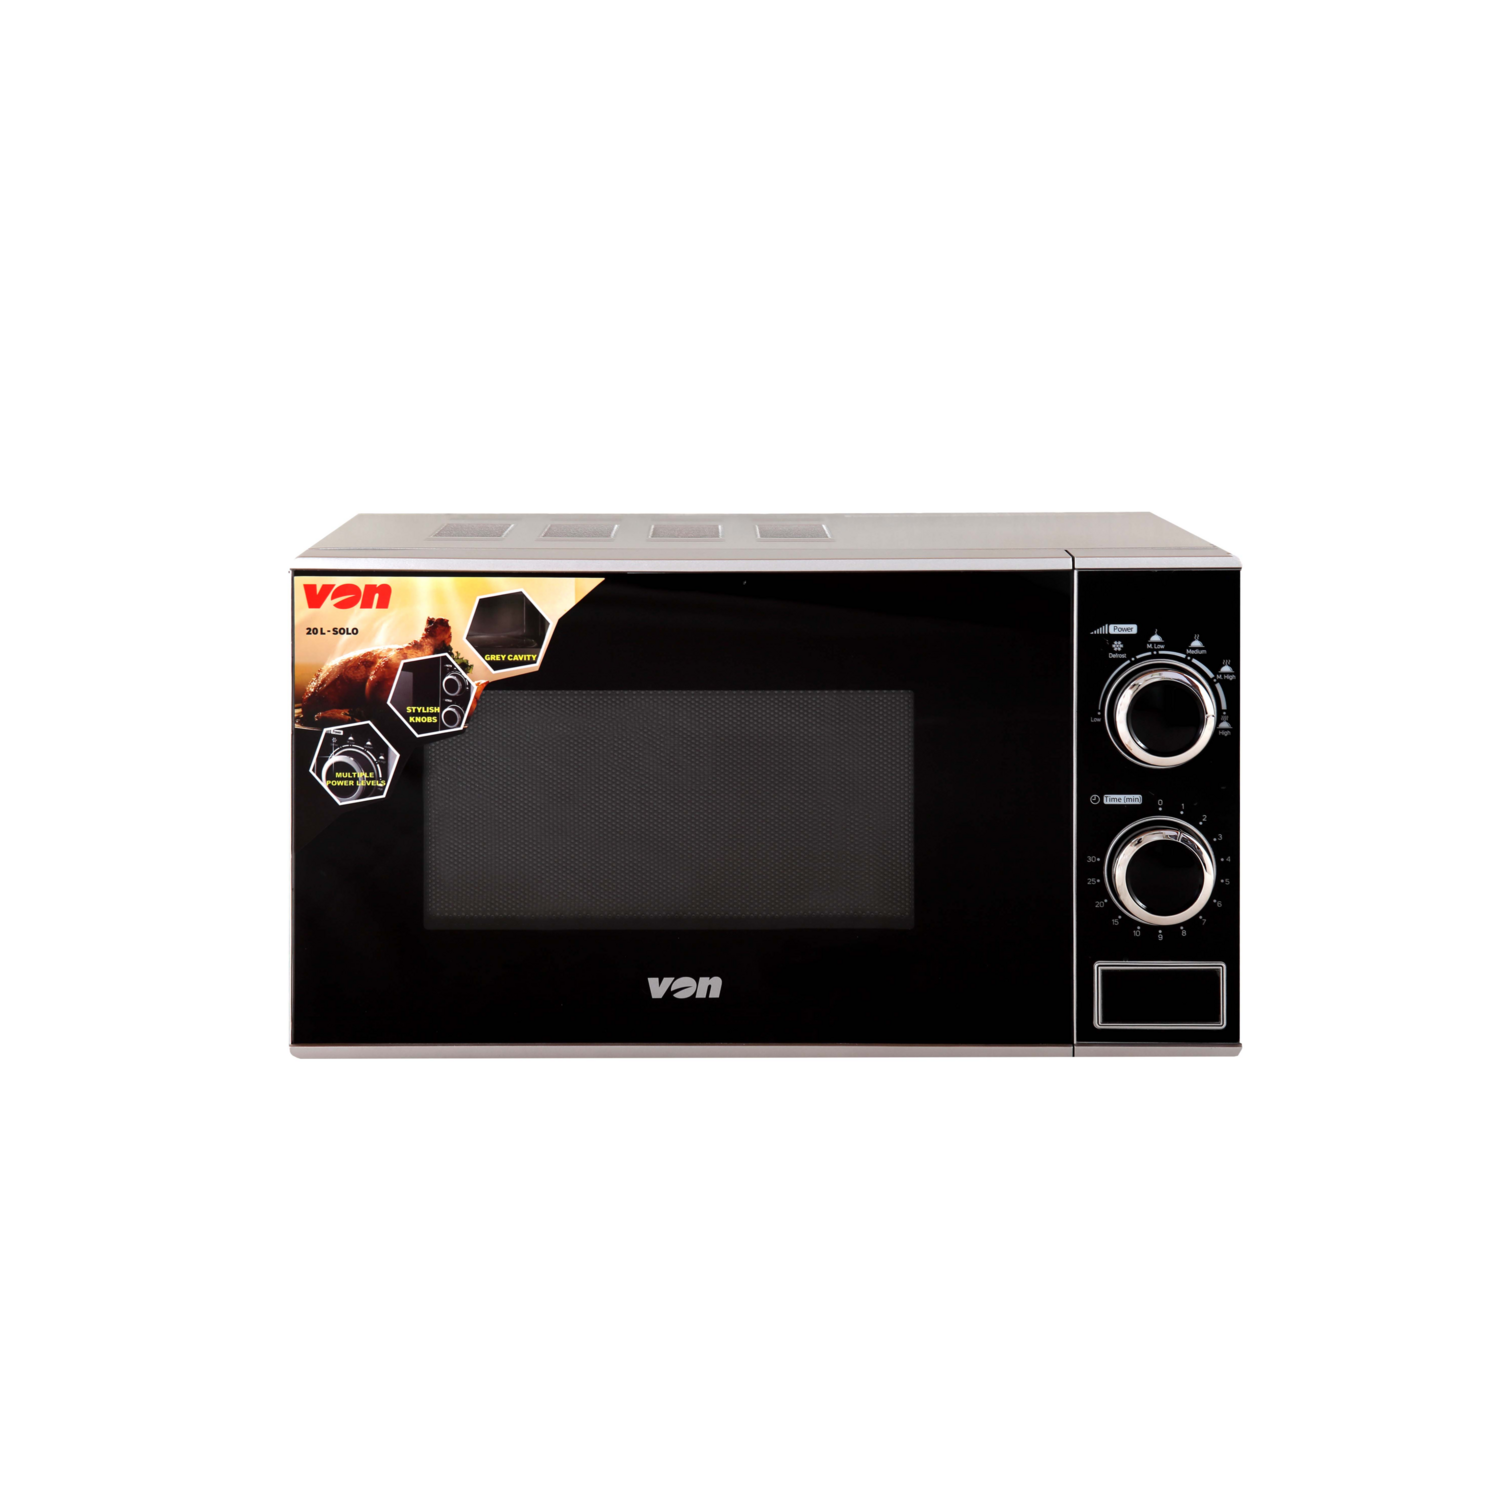 VON Hotpoint VAMS-20MGS Microwave Oven, Solo, 20L Mechanical - Silver